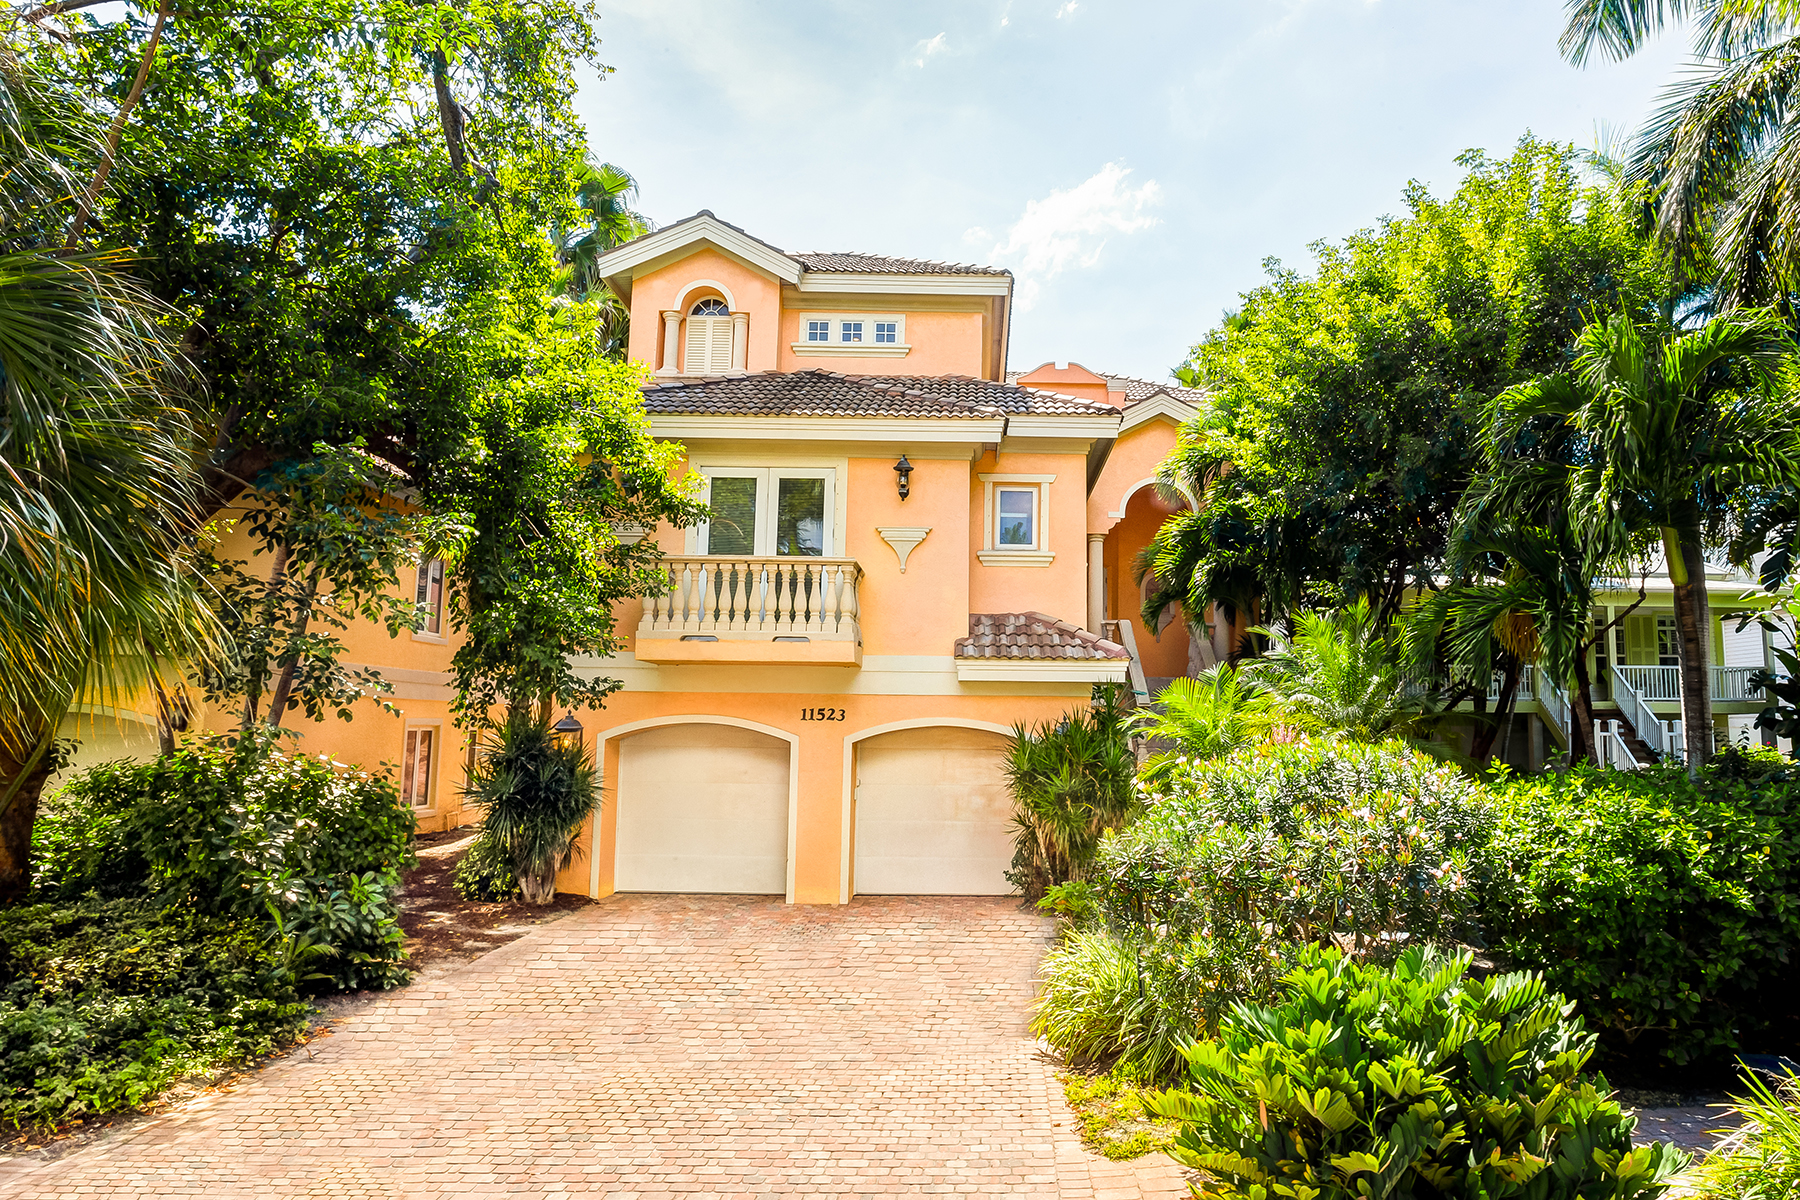 Single Family Home for Sale at CAPTIVA 11523 Andy Rosse Ln Captiva, Florida 33924 United States